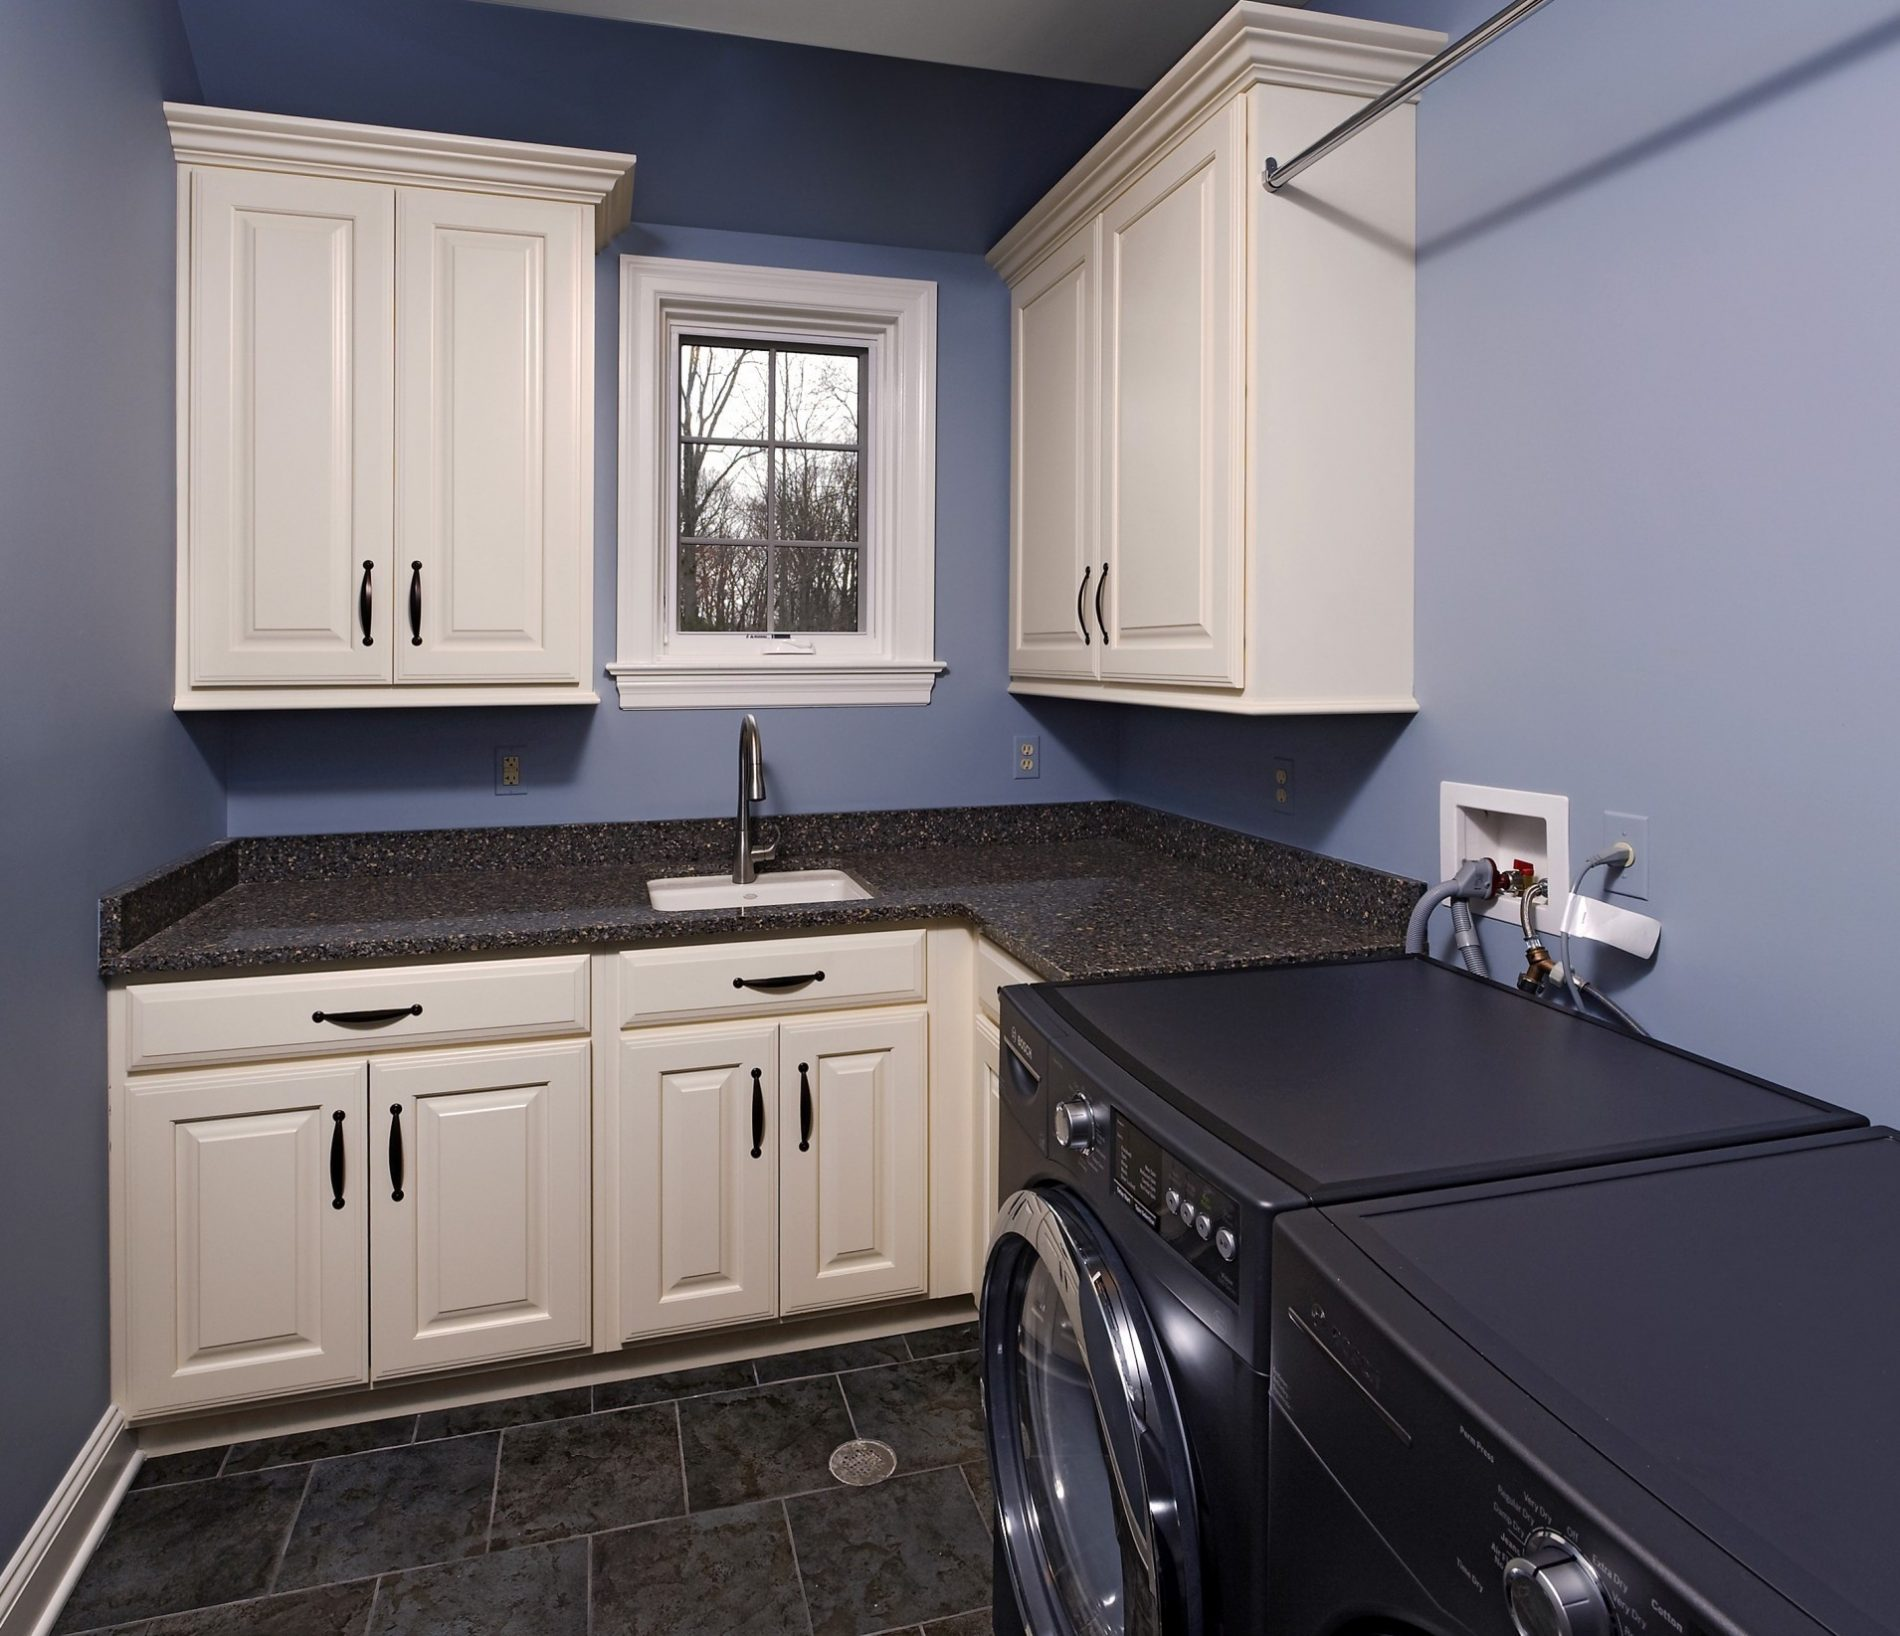 New Kitchen Cabinets Laundry Bath Home Office Heartland Design